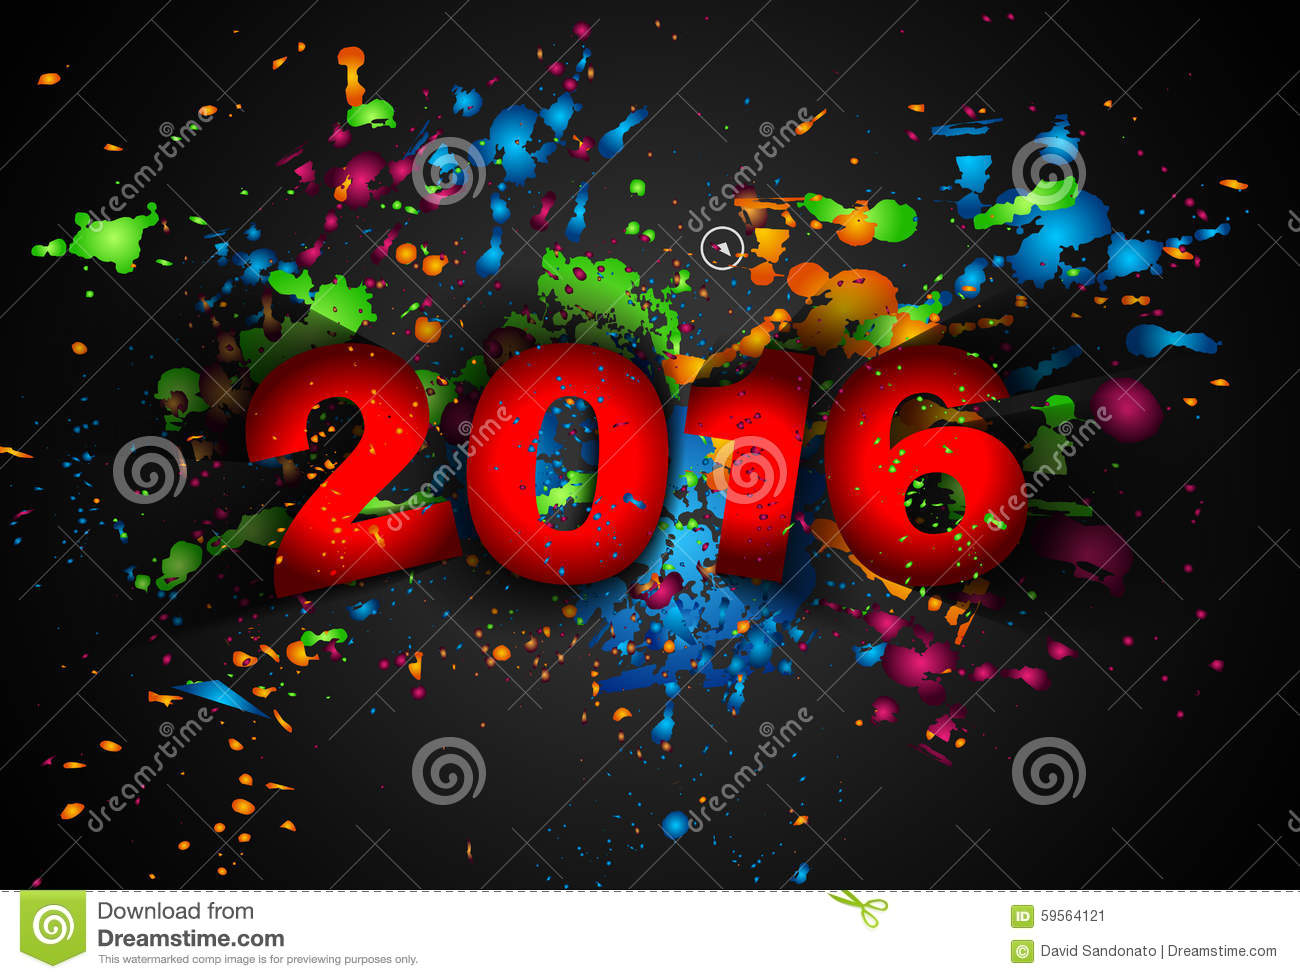 new year background images.html